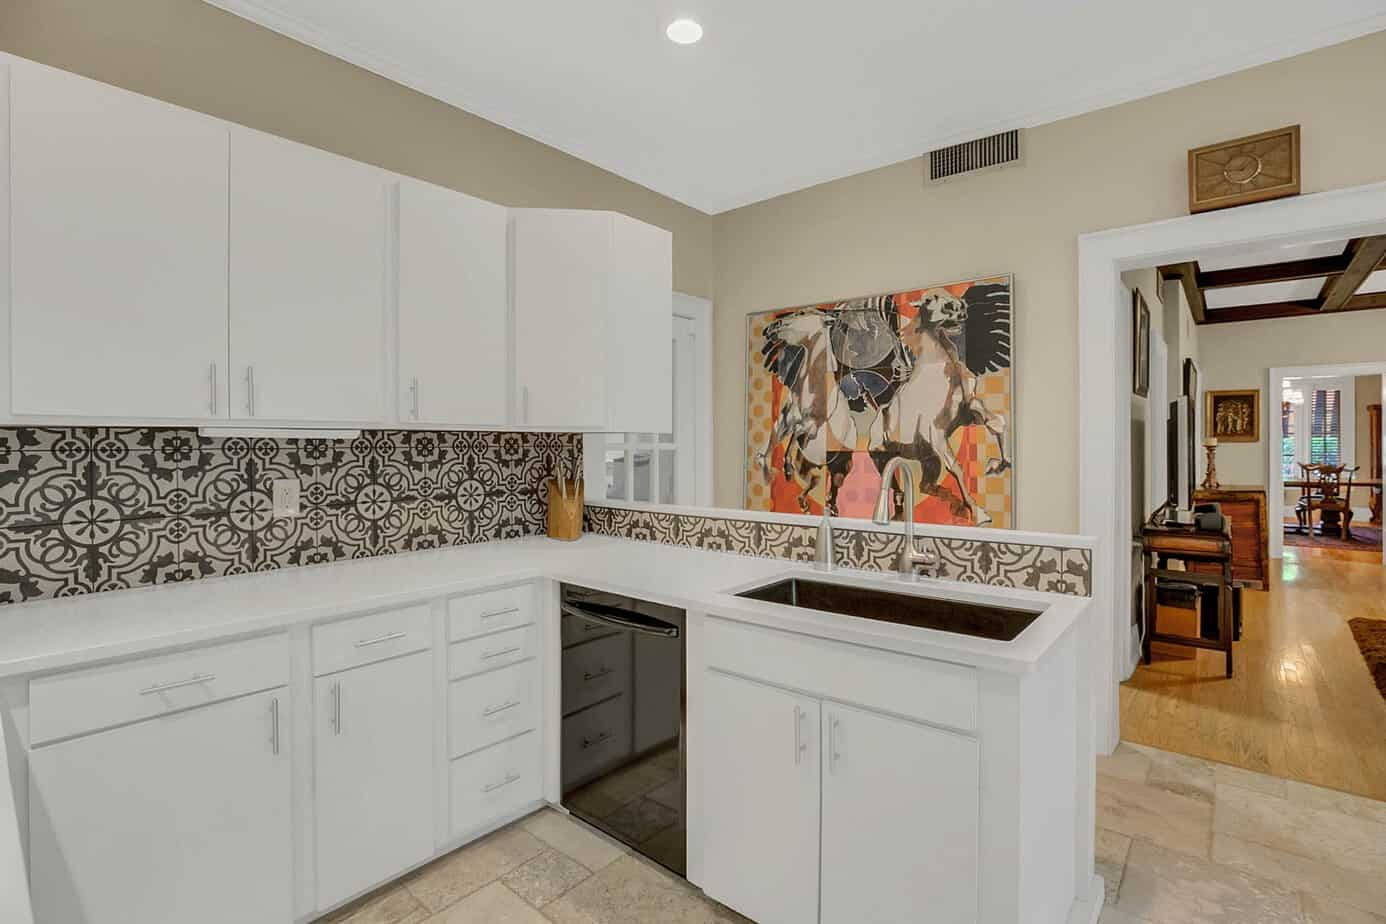 Kitchen with stone counterops, blue mosaic backsplash, black dishwasher, white cabinets and tile floor for the home for sale at 4024 W Bay to Bay Tampa FL 33629